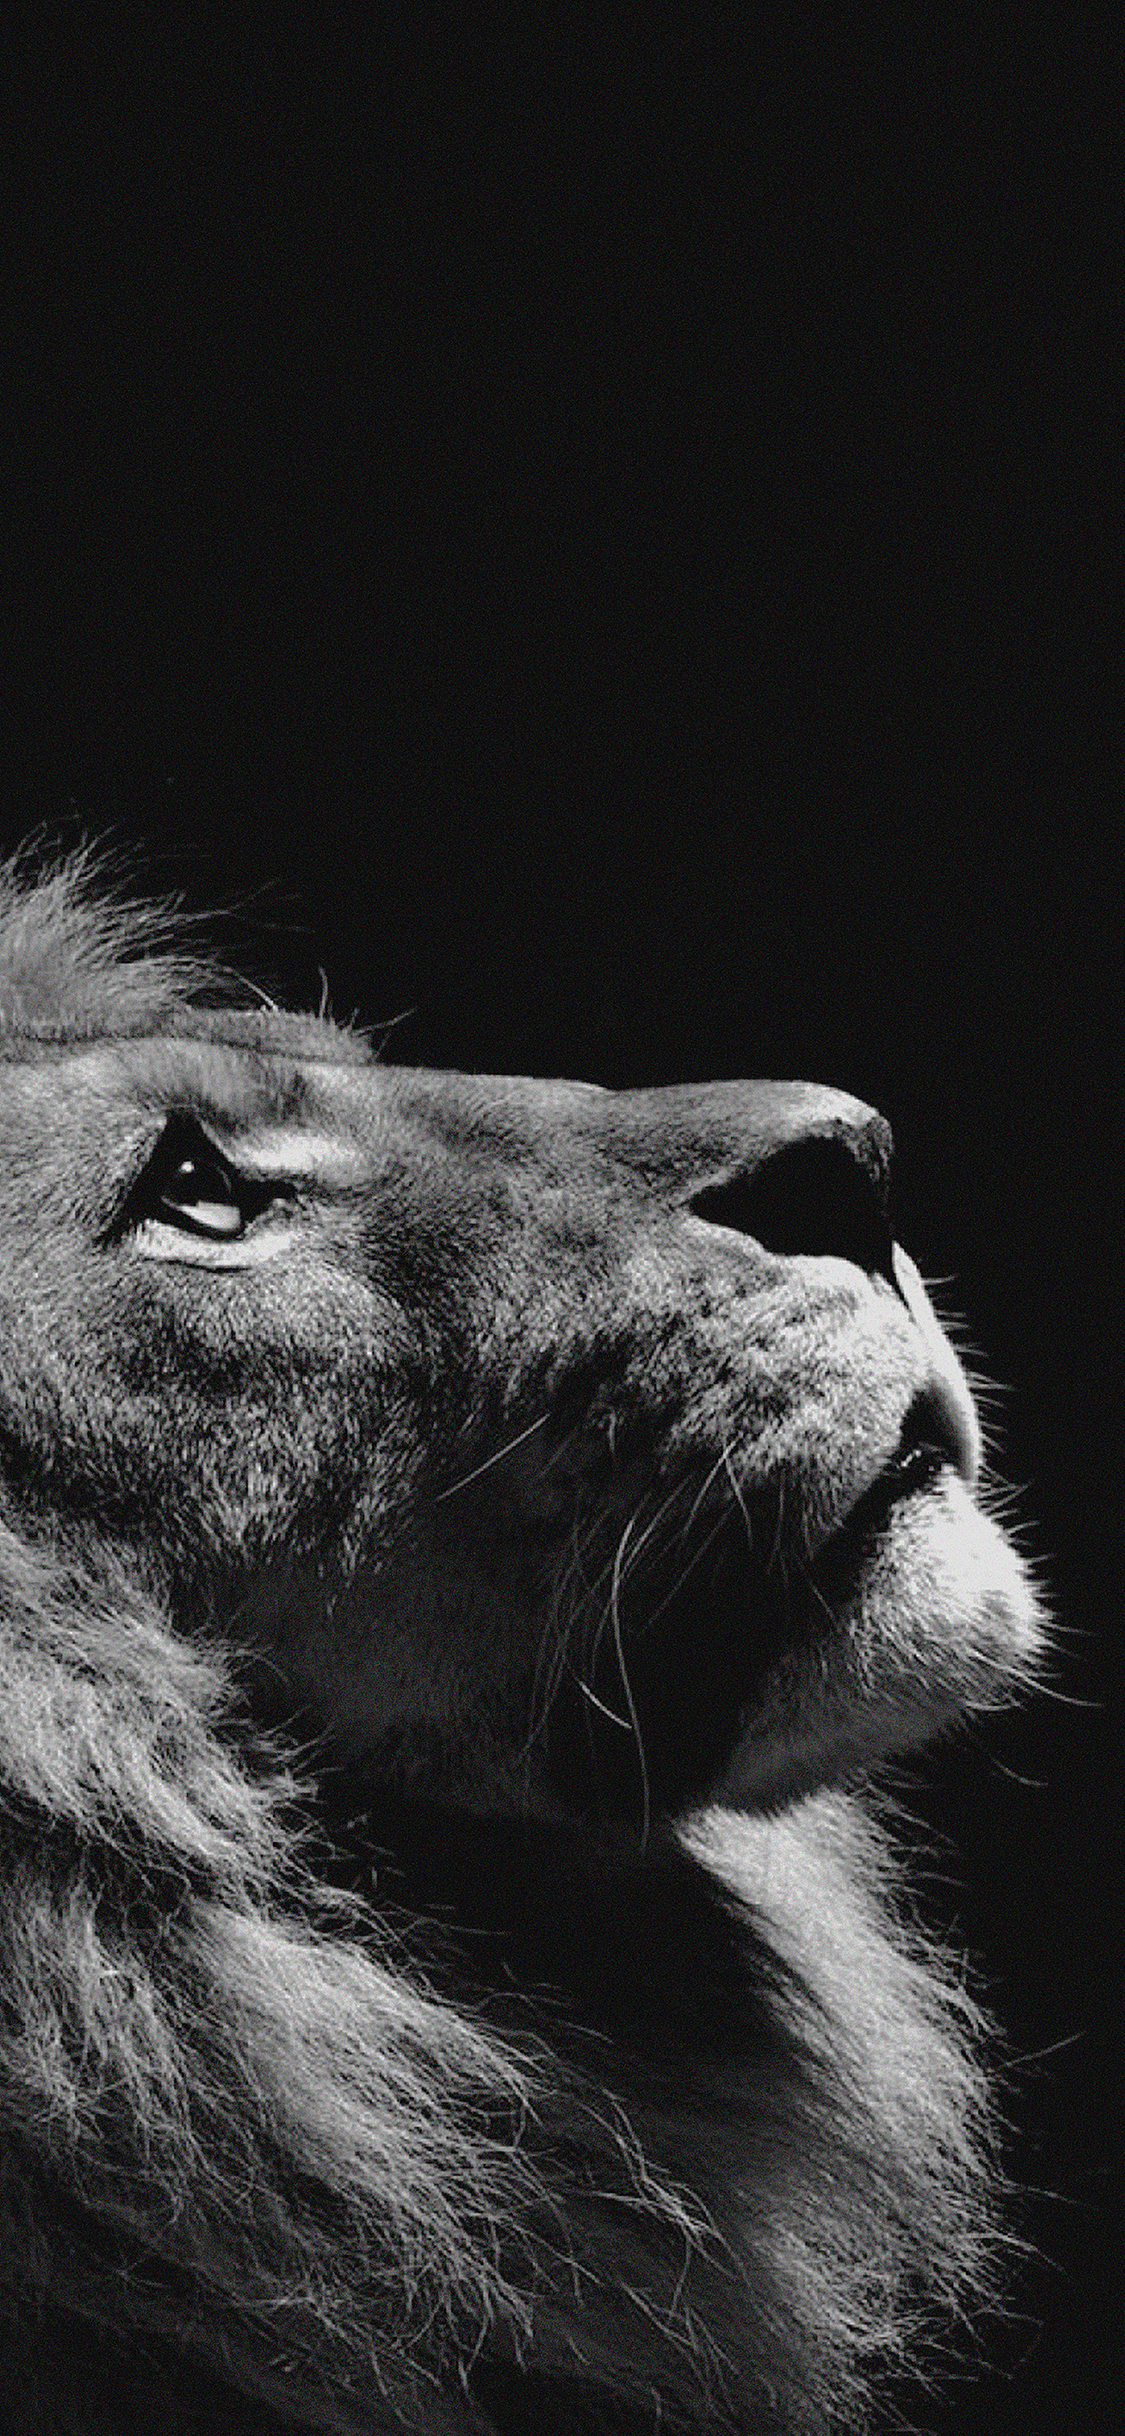 Simple Car Wallpapers Mj50 Lion Looking Sky Animal Nature Dark Photo Papers Co